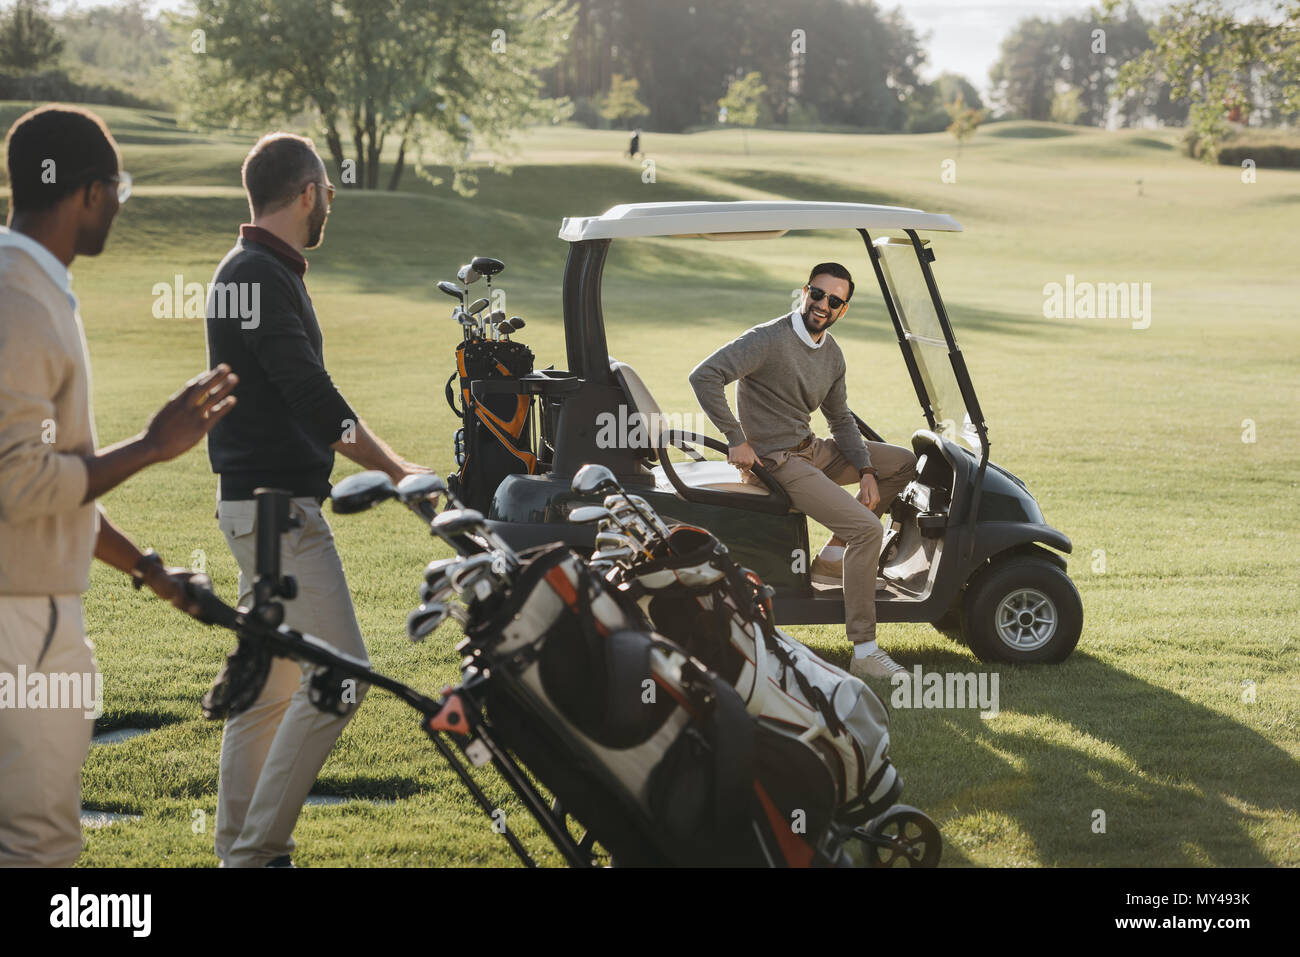 multiethnic friends with golf bags and golf cart spending time together on golf course - Stock Image